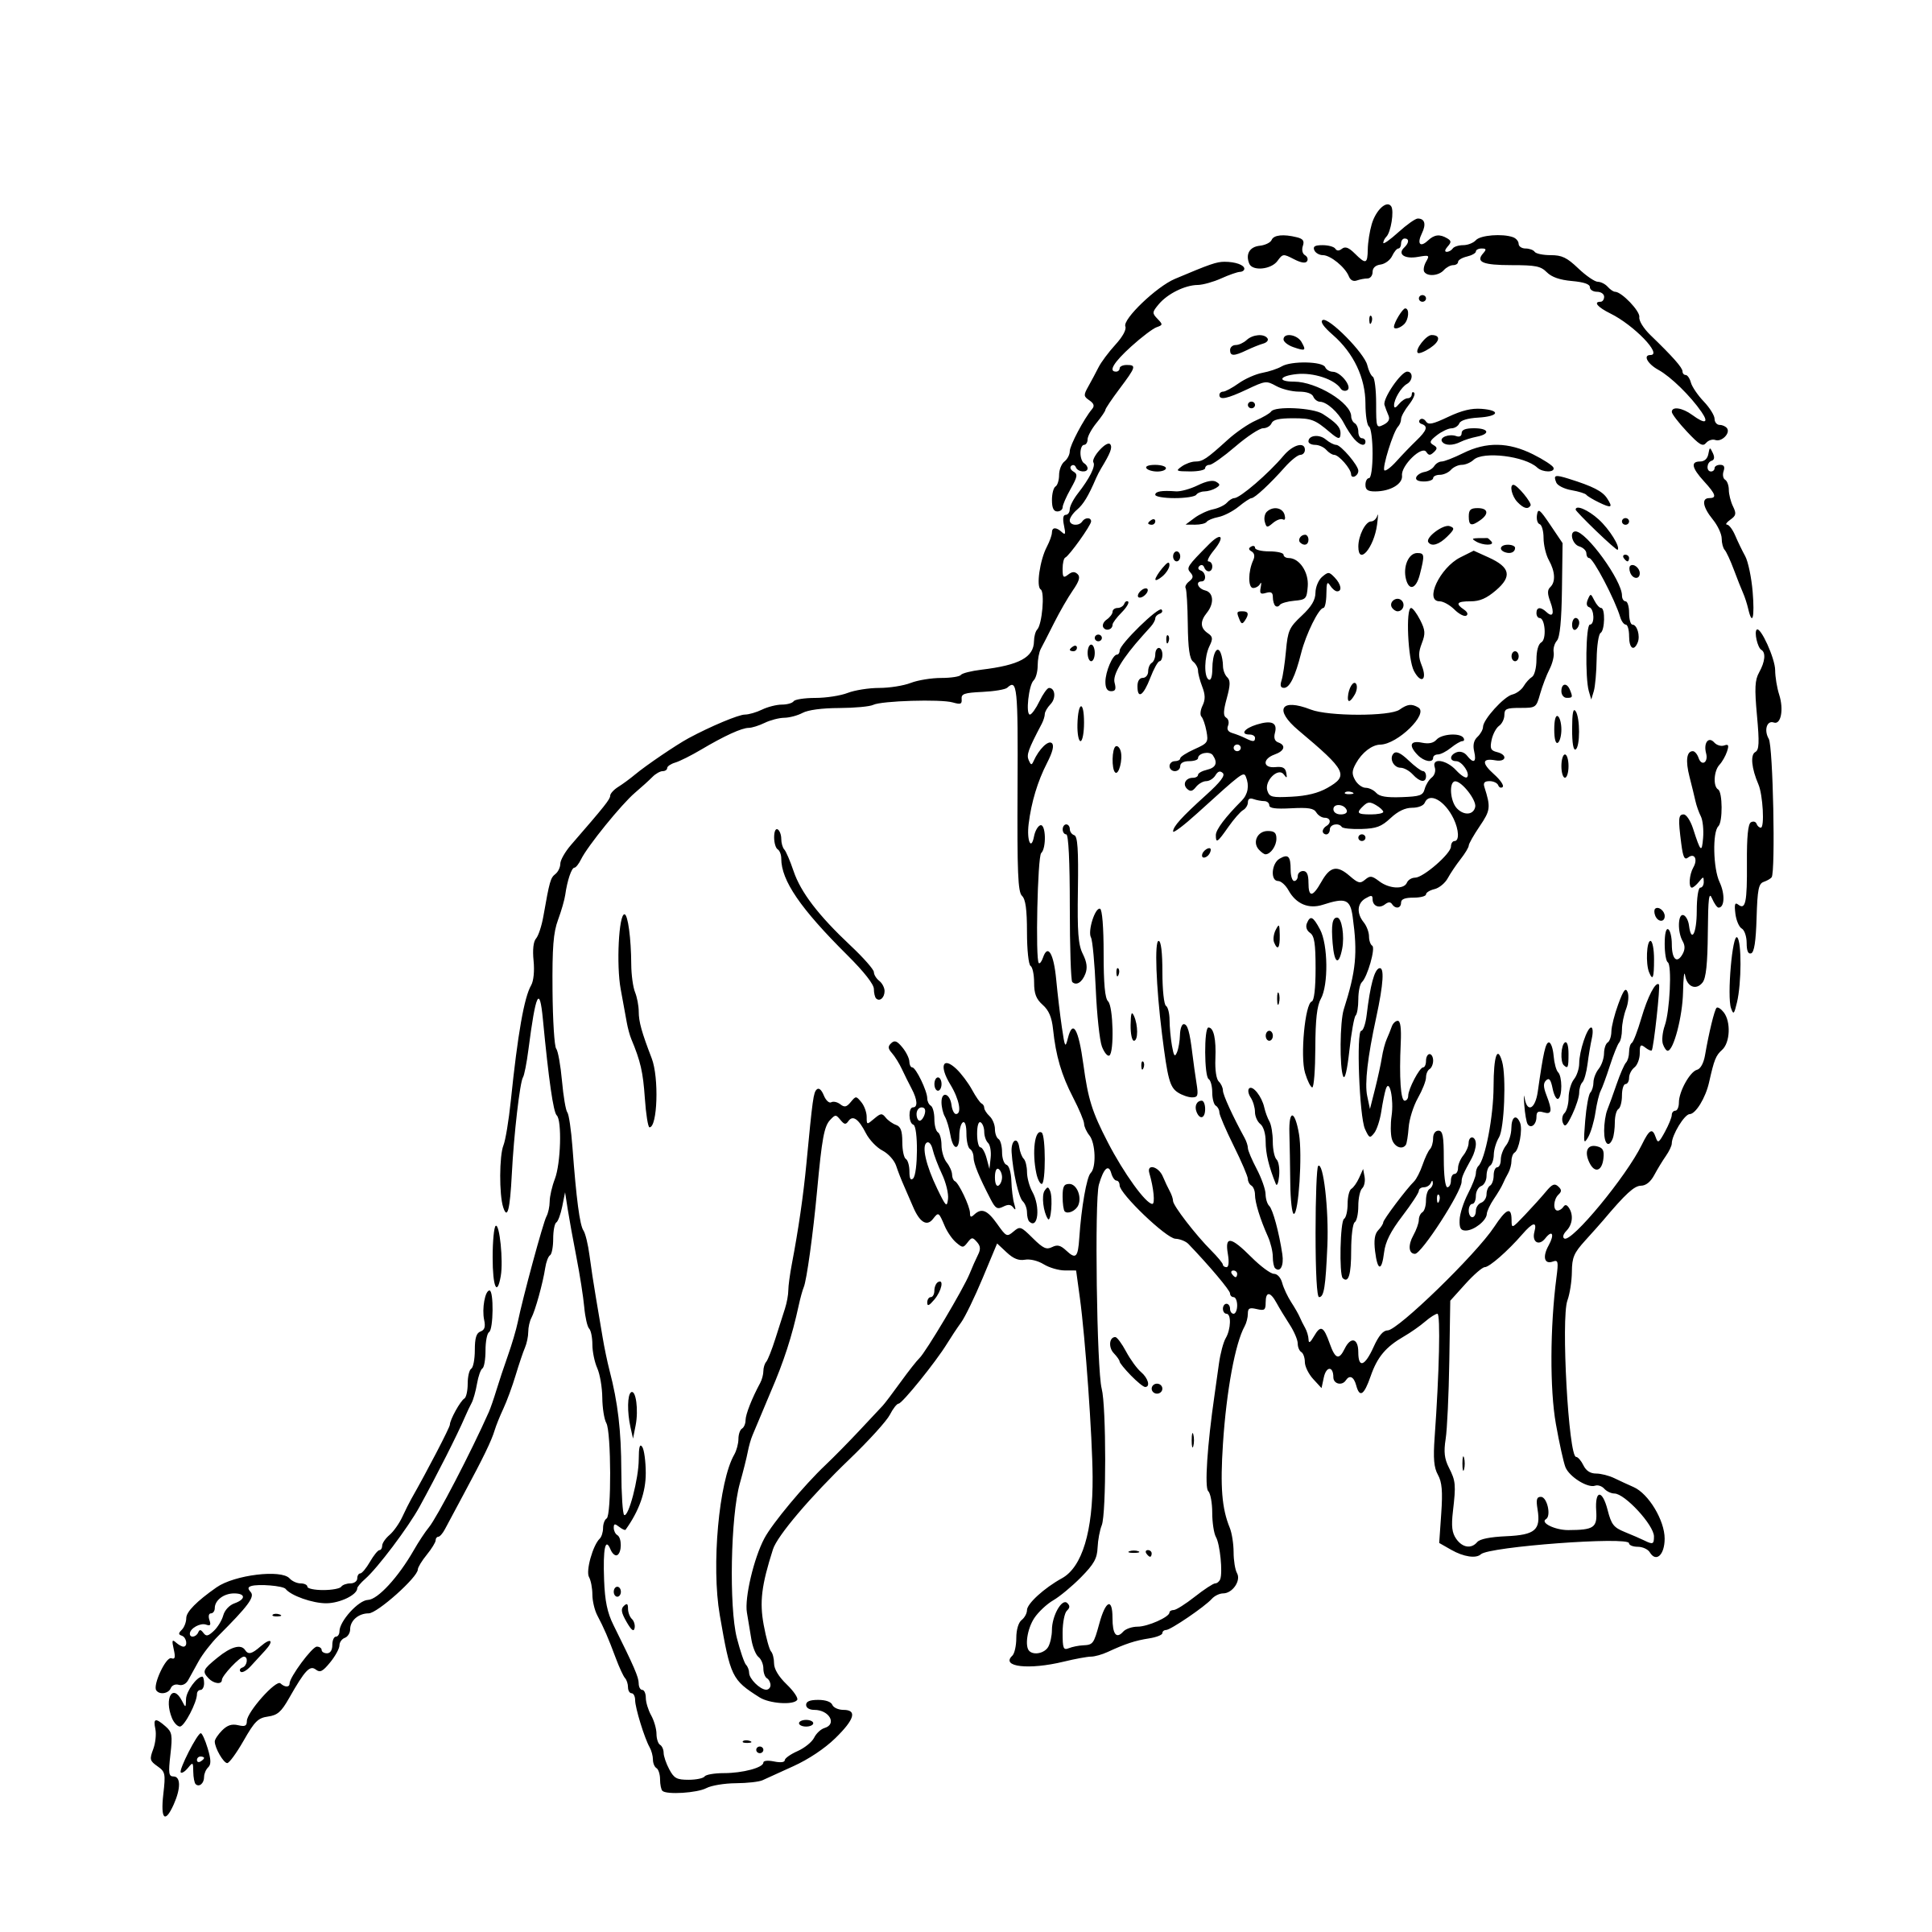 Lion Drawing Black And White At Getdrawings